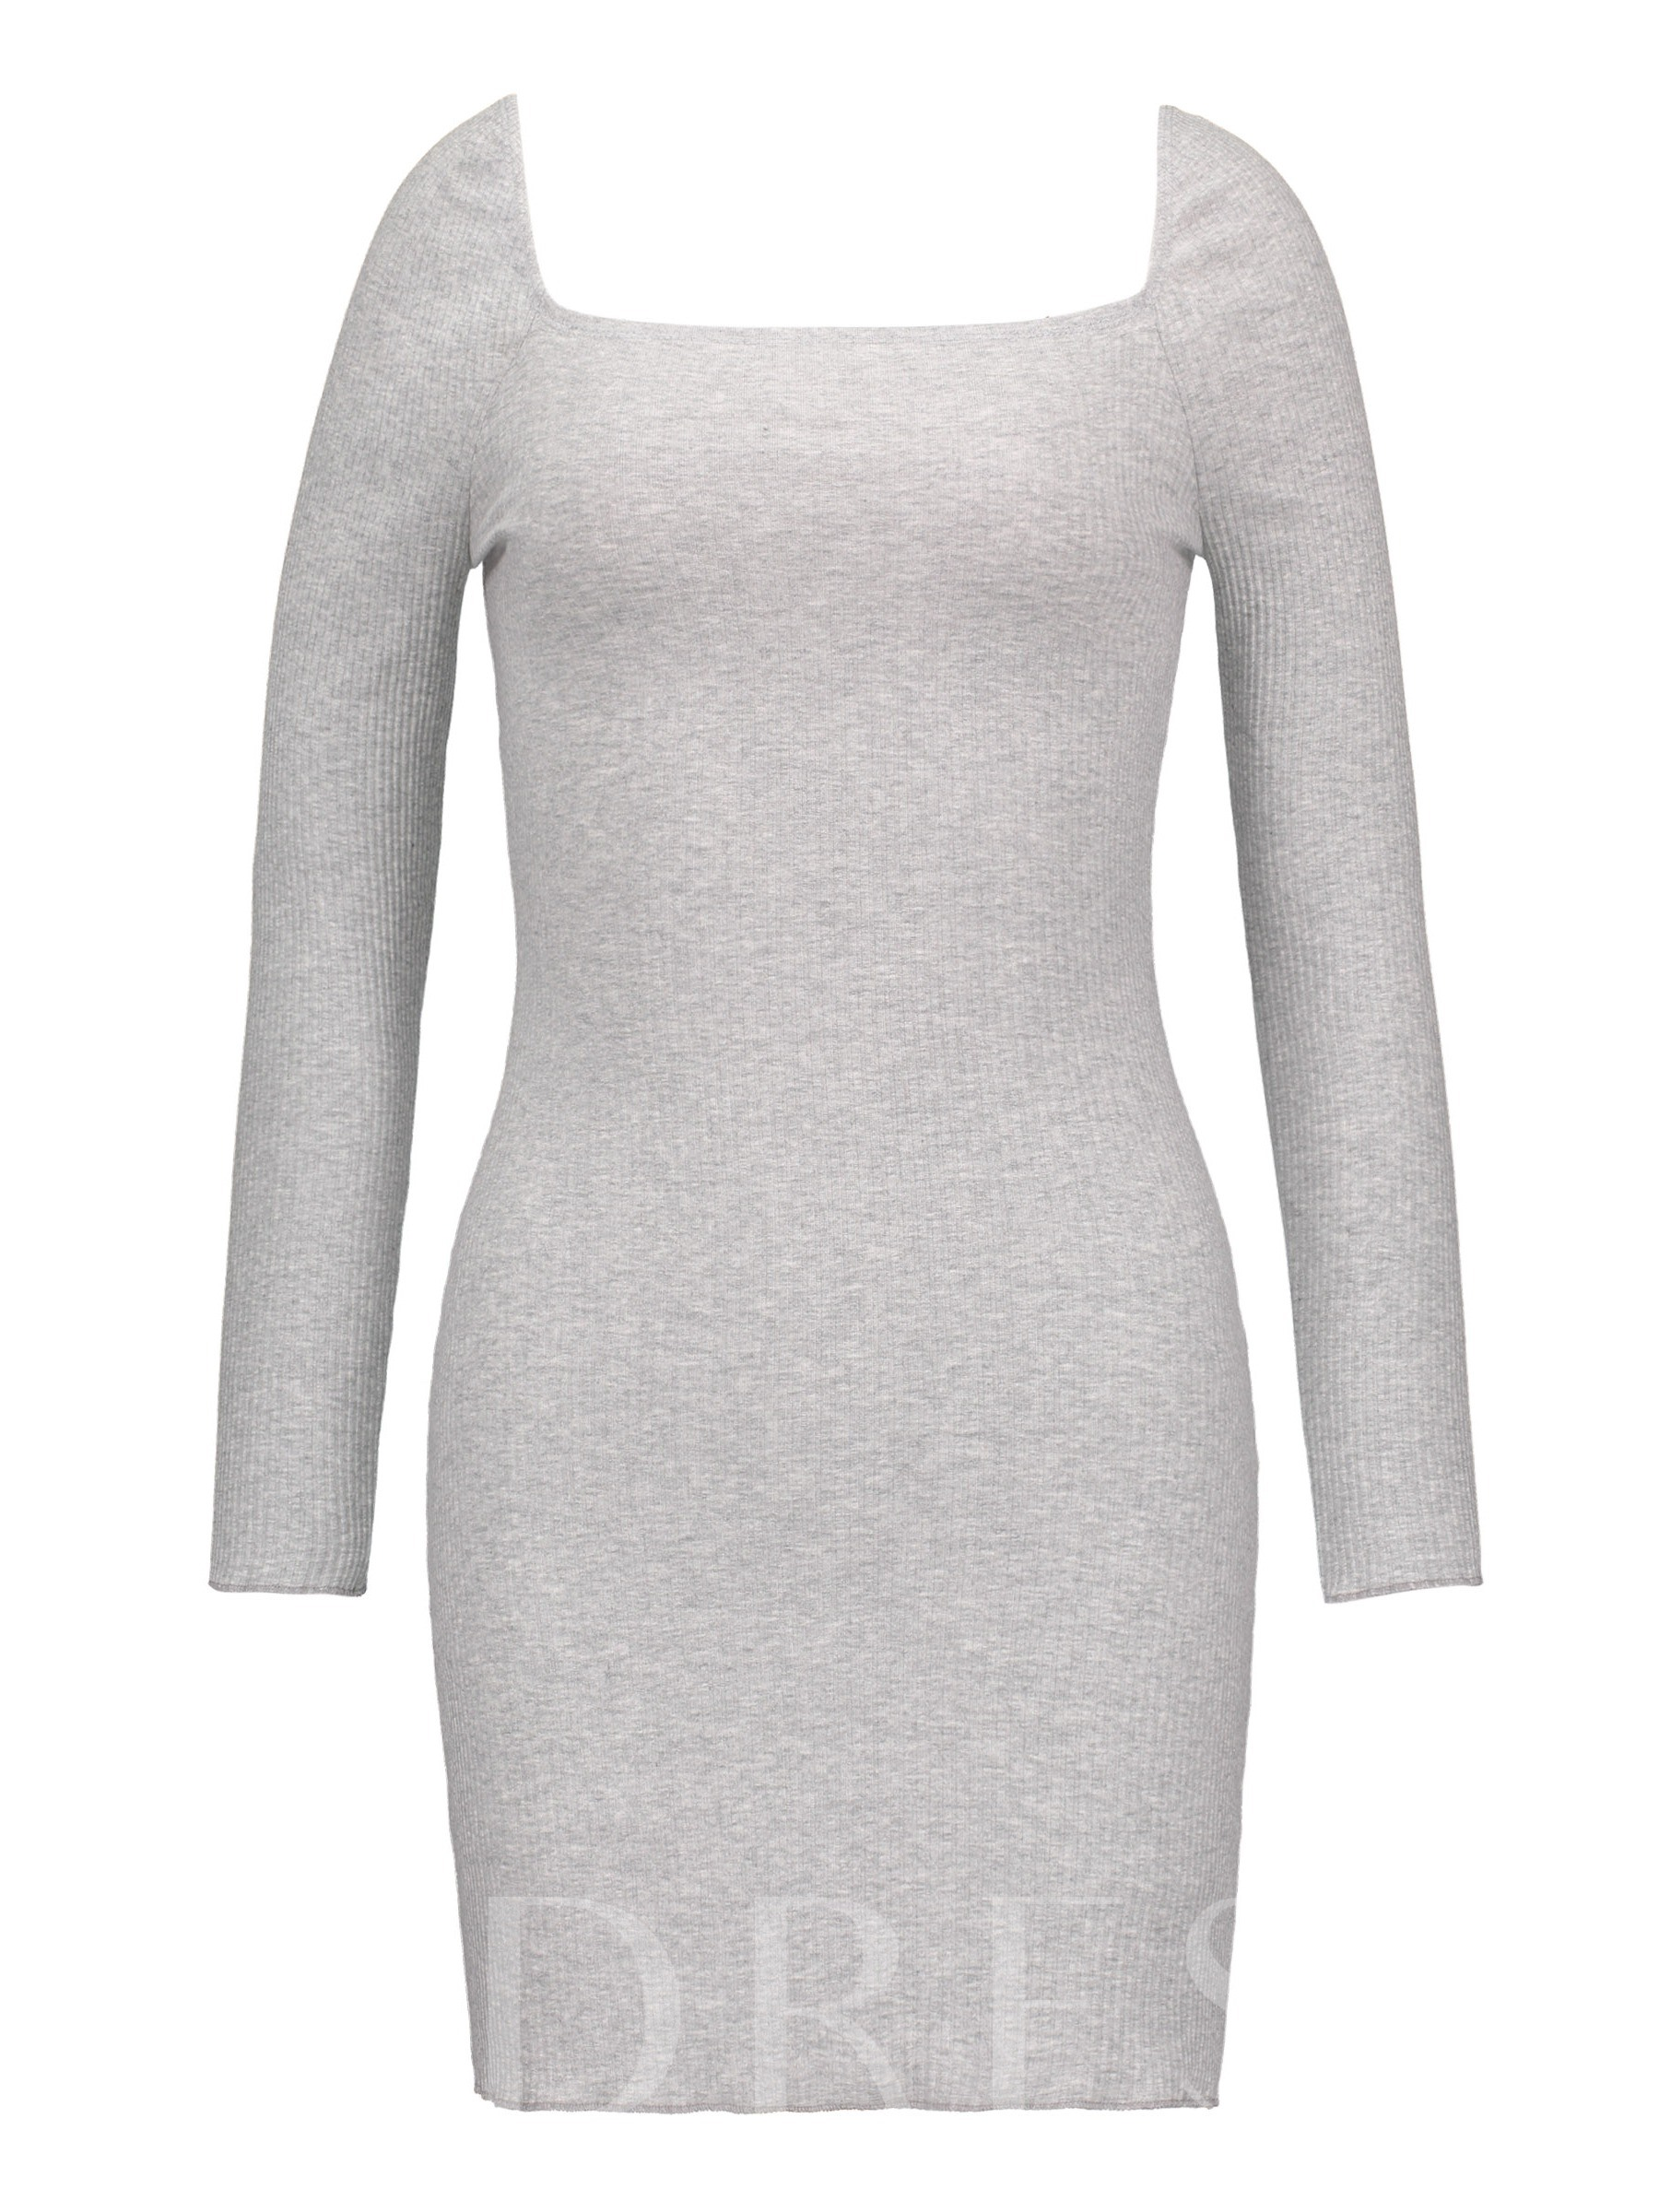 Buy Square Neck Long Sleeve Bodycon Dress, Spring,Fall, 13364506 for $13.97 in TBDress store